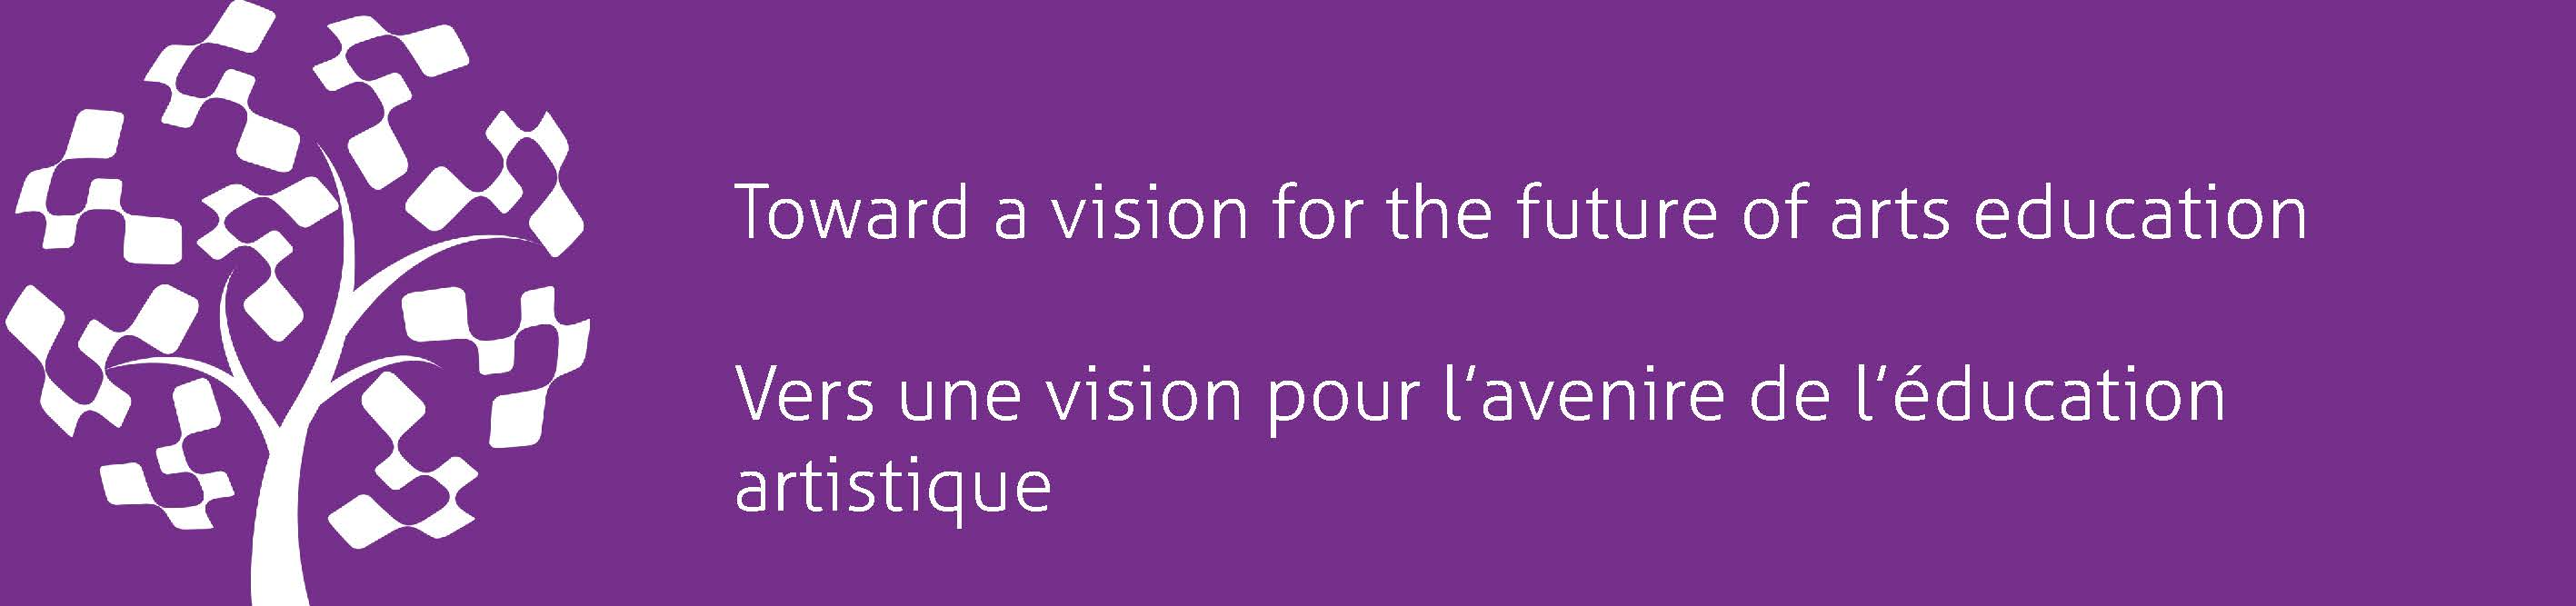 Toward a vision for the future of arts education / Vers une vision pour l'avenire de l'éducation artistique